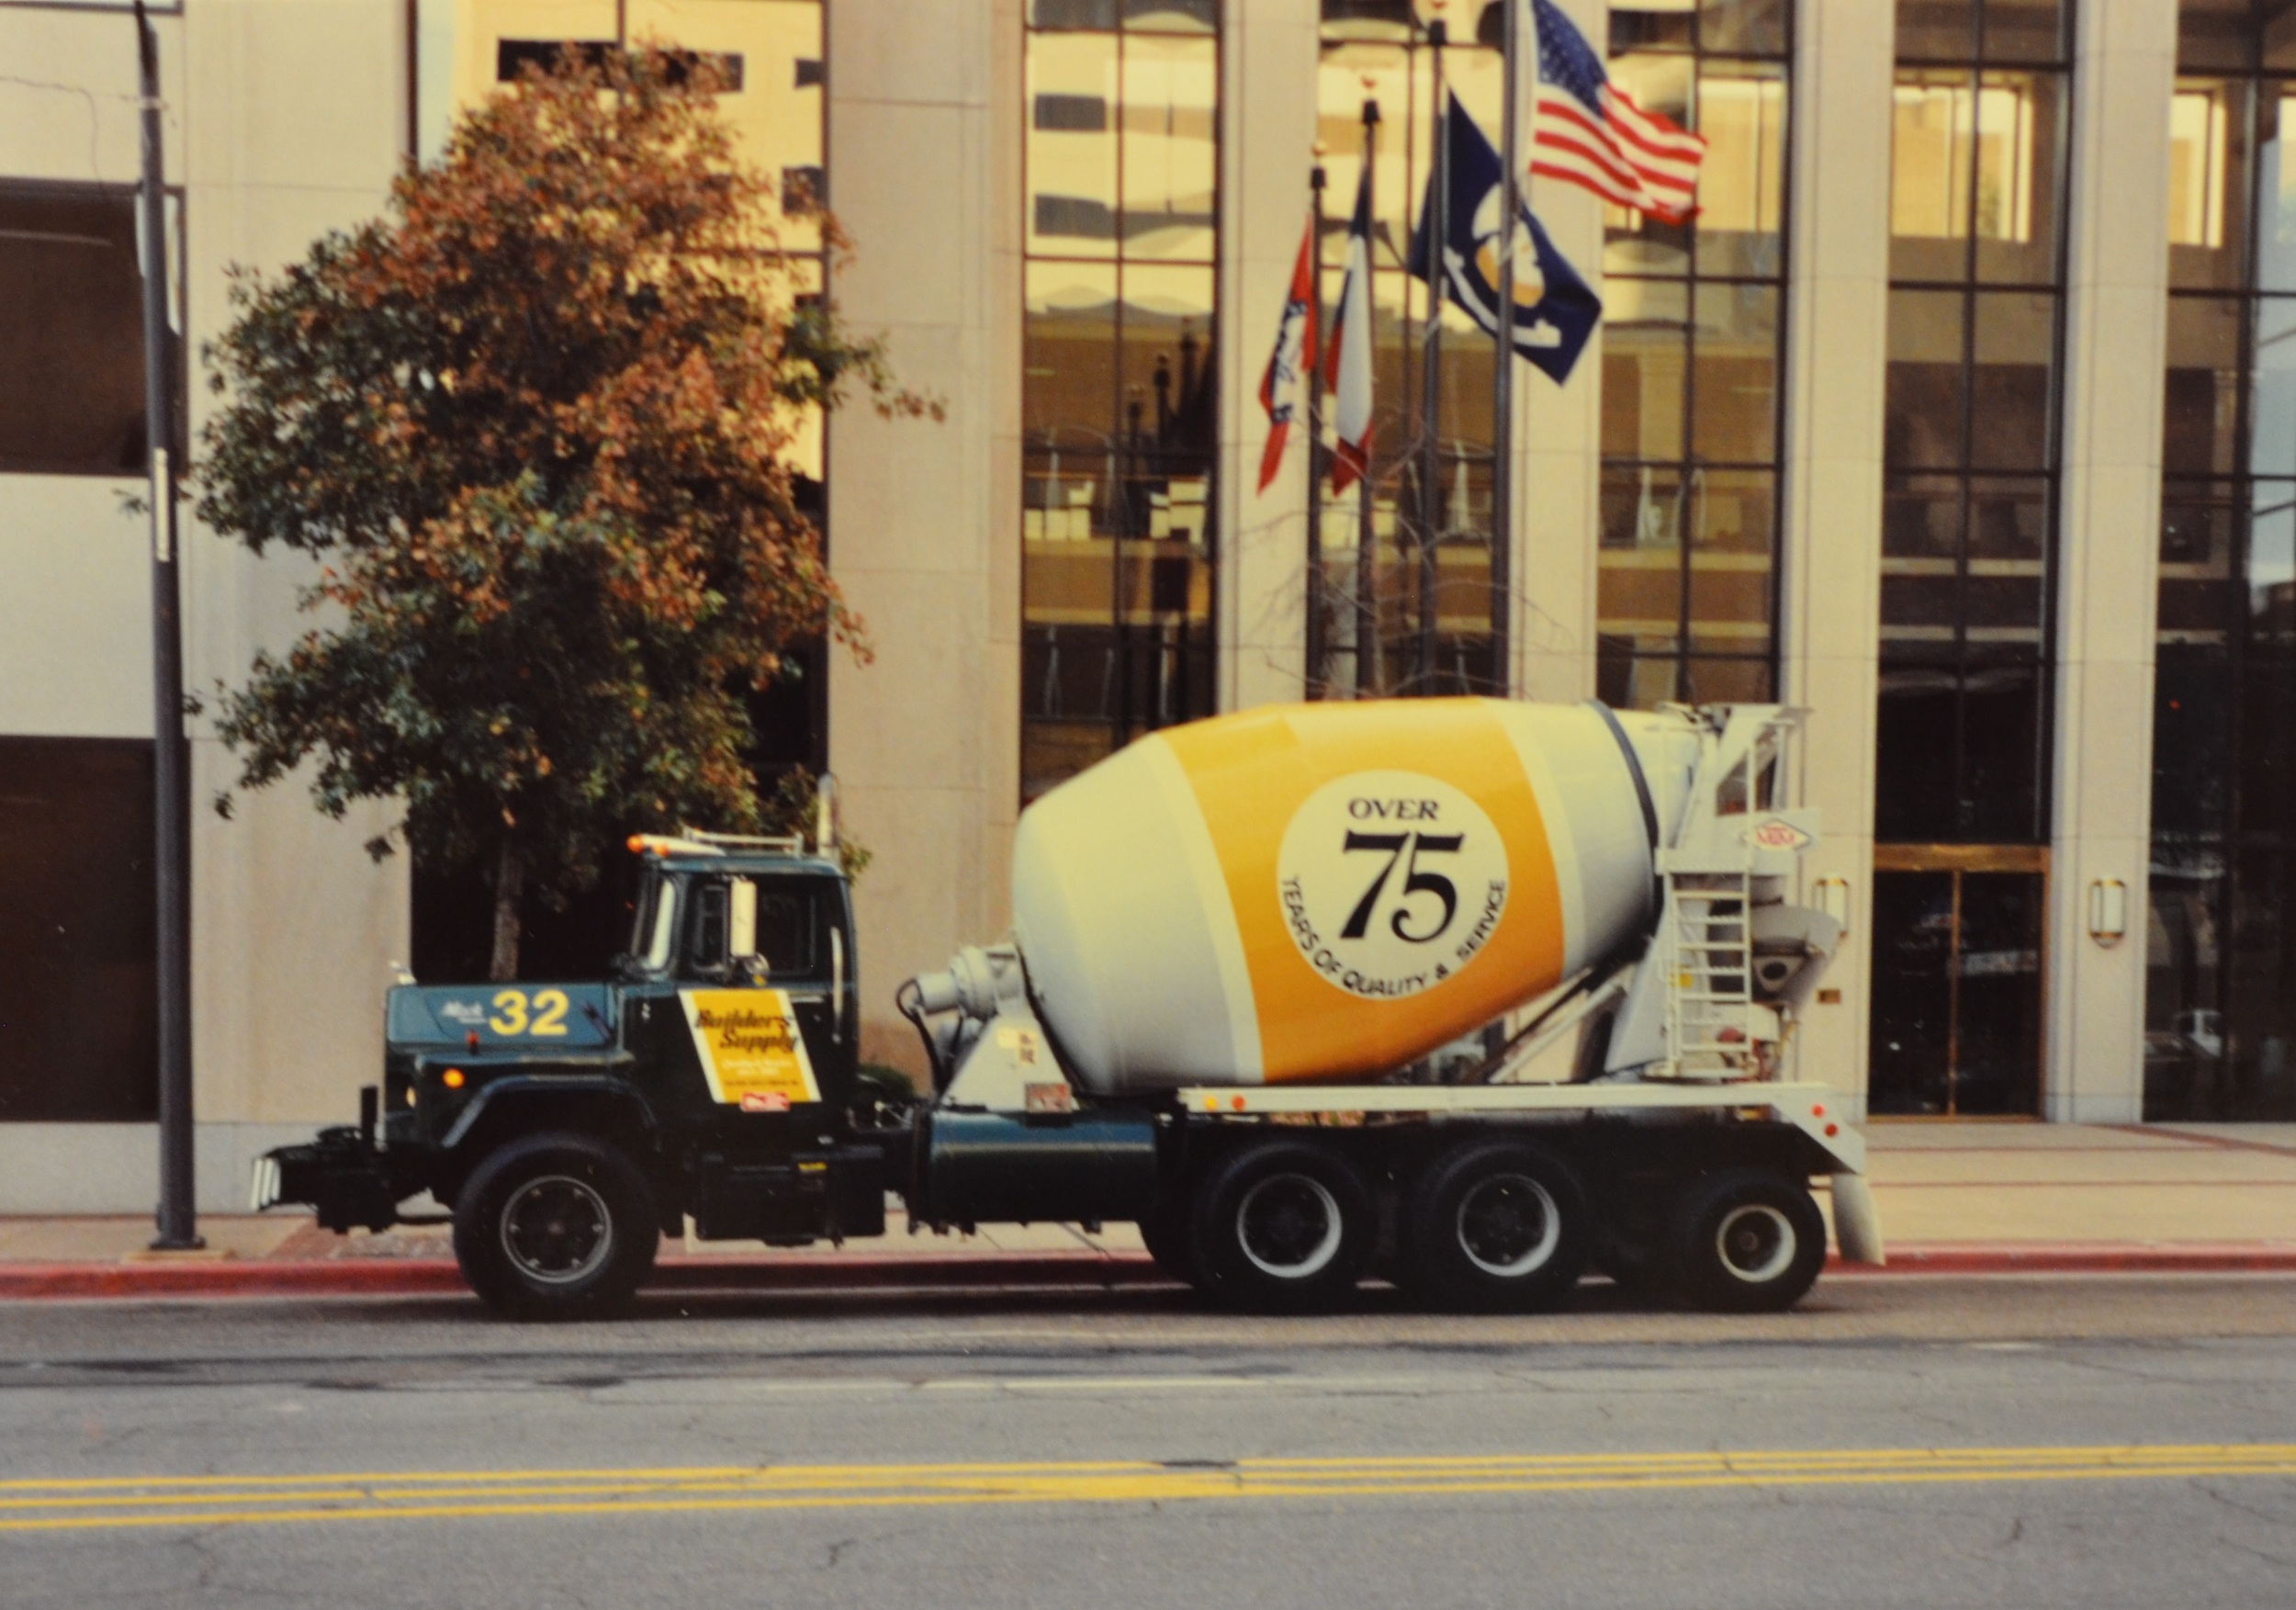 (1986 Commercial National Bank)Builders Supply supplied all the concrete for the Commercial National Bank. The building is now known as the Regions Bank Tower and at 26 stories it is the still the tallest building in Shreveport.